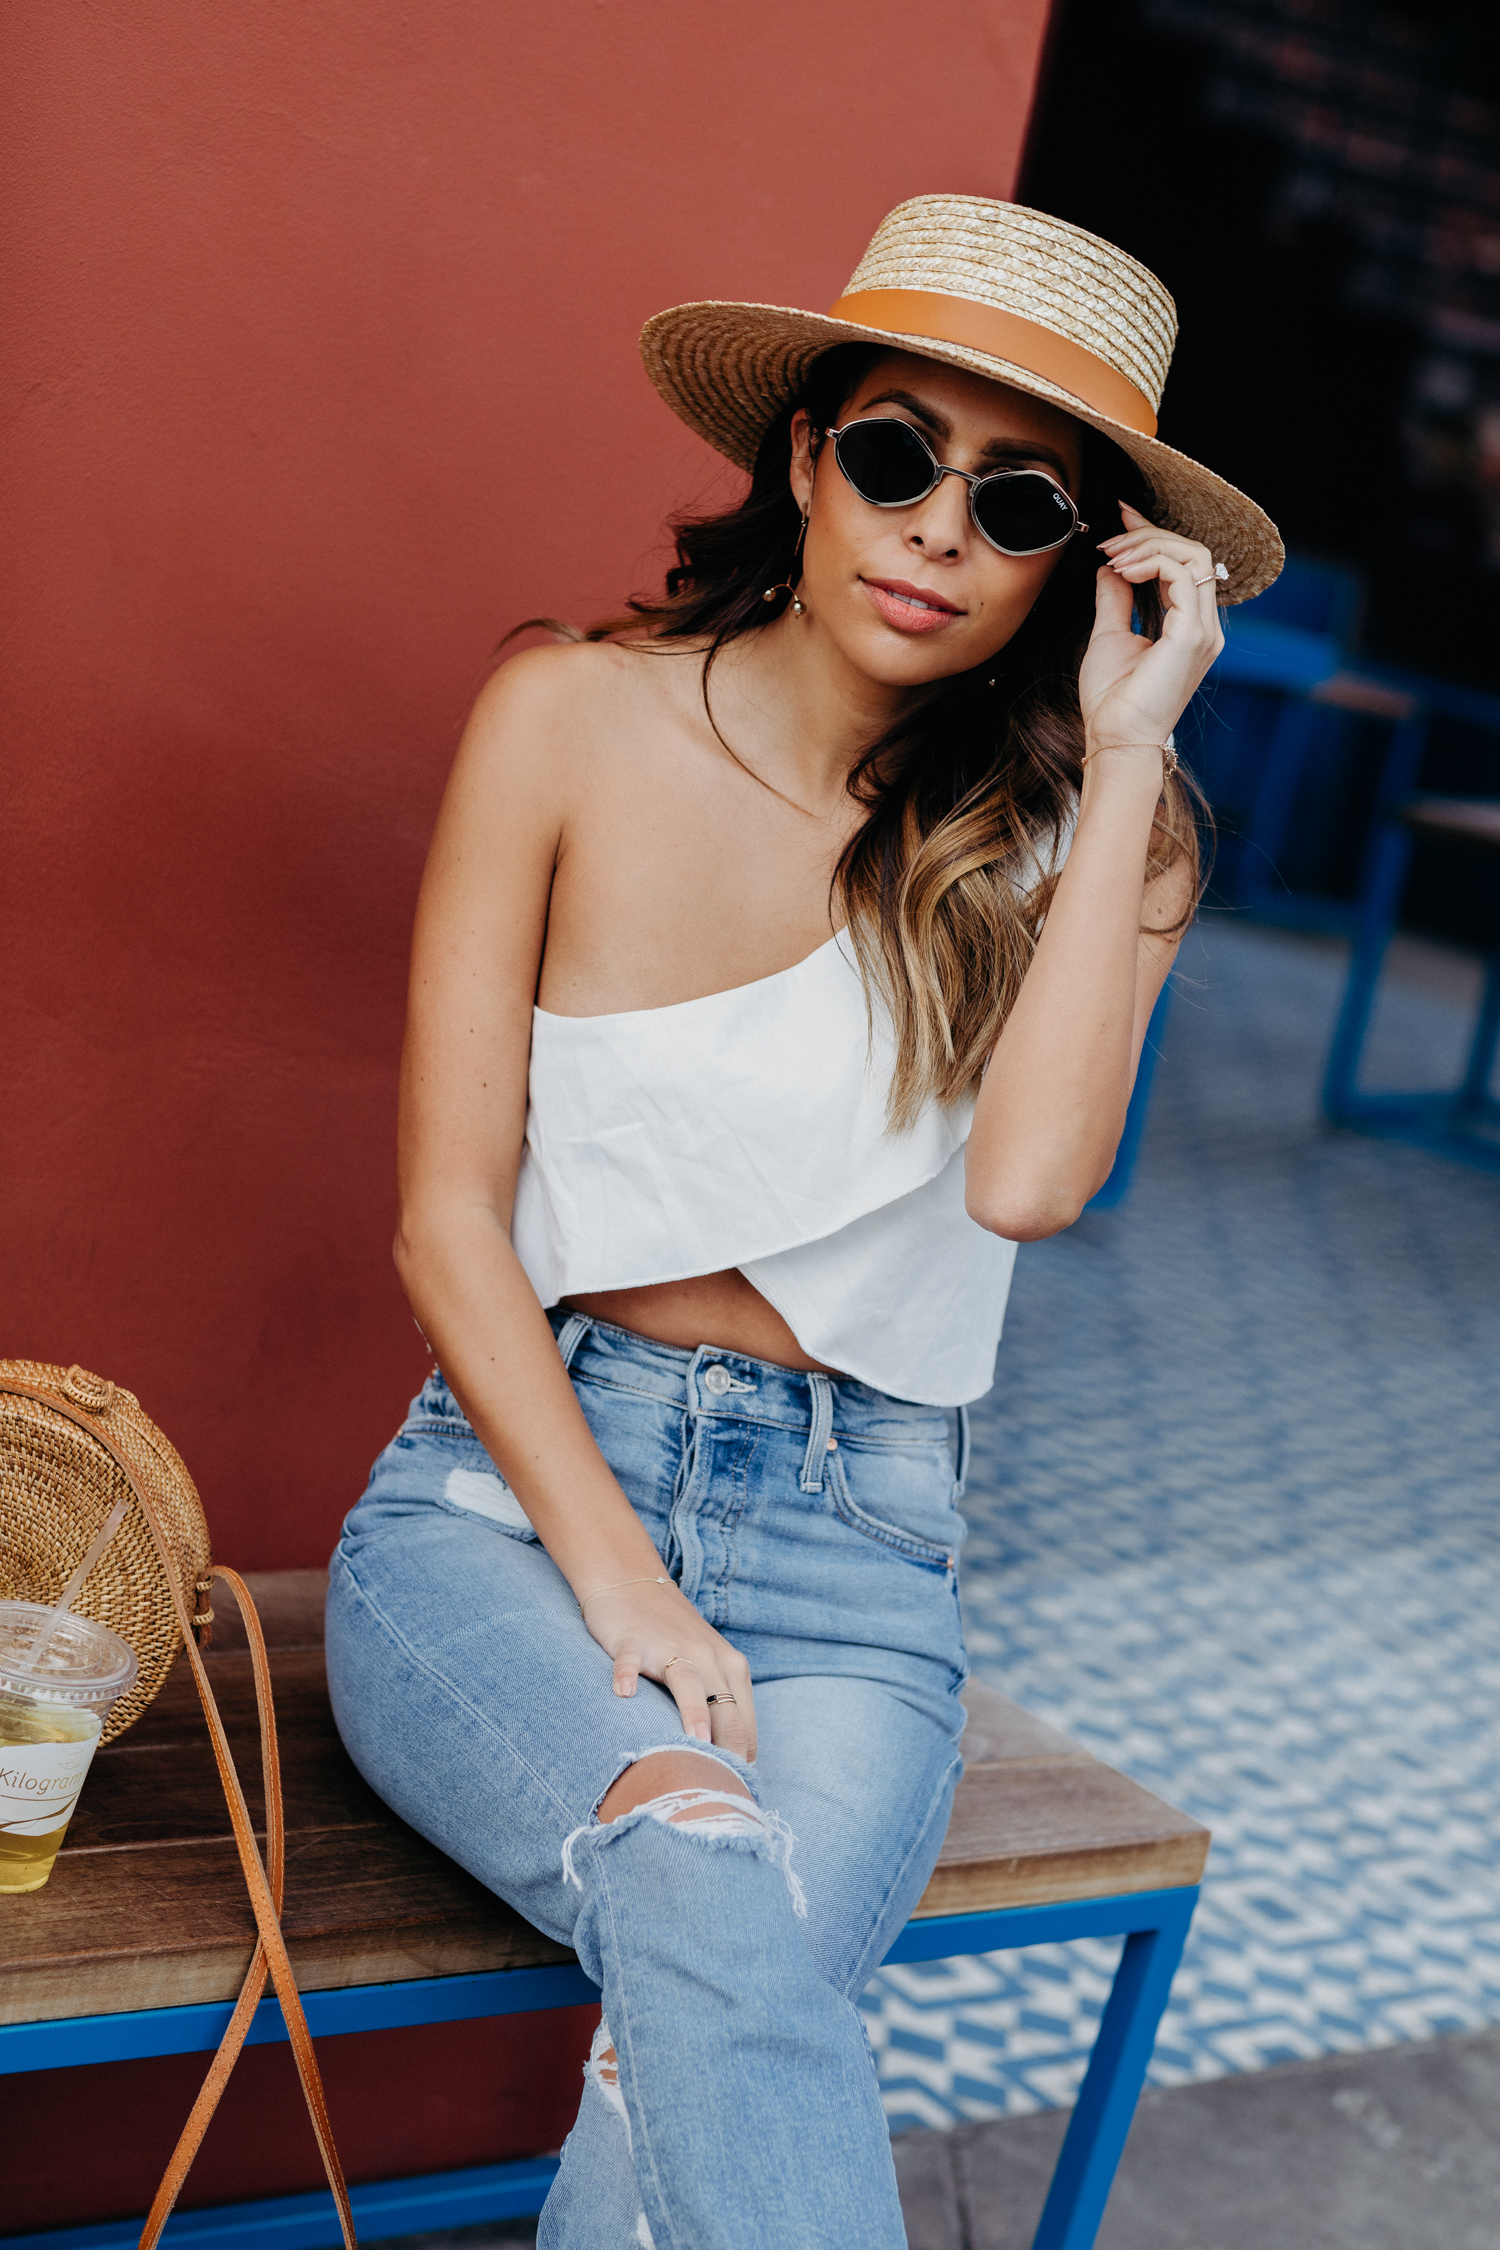 Palm Springs Vacay Outfit - Lioness Top + Lack of Color Hat